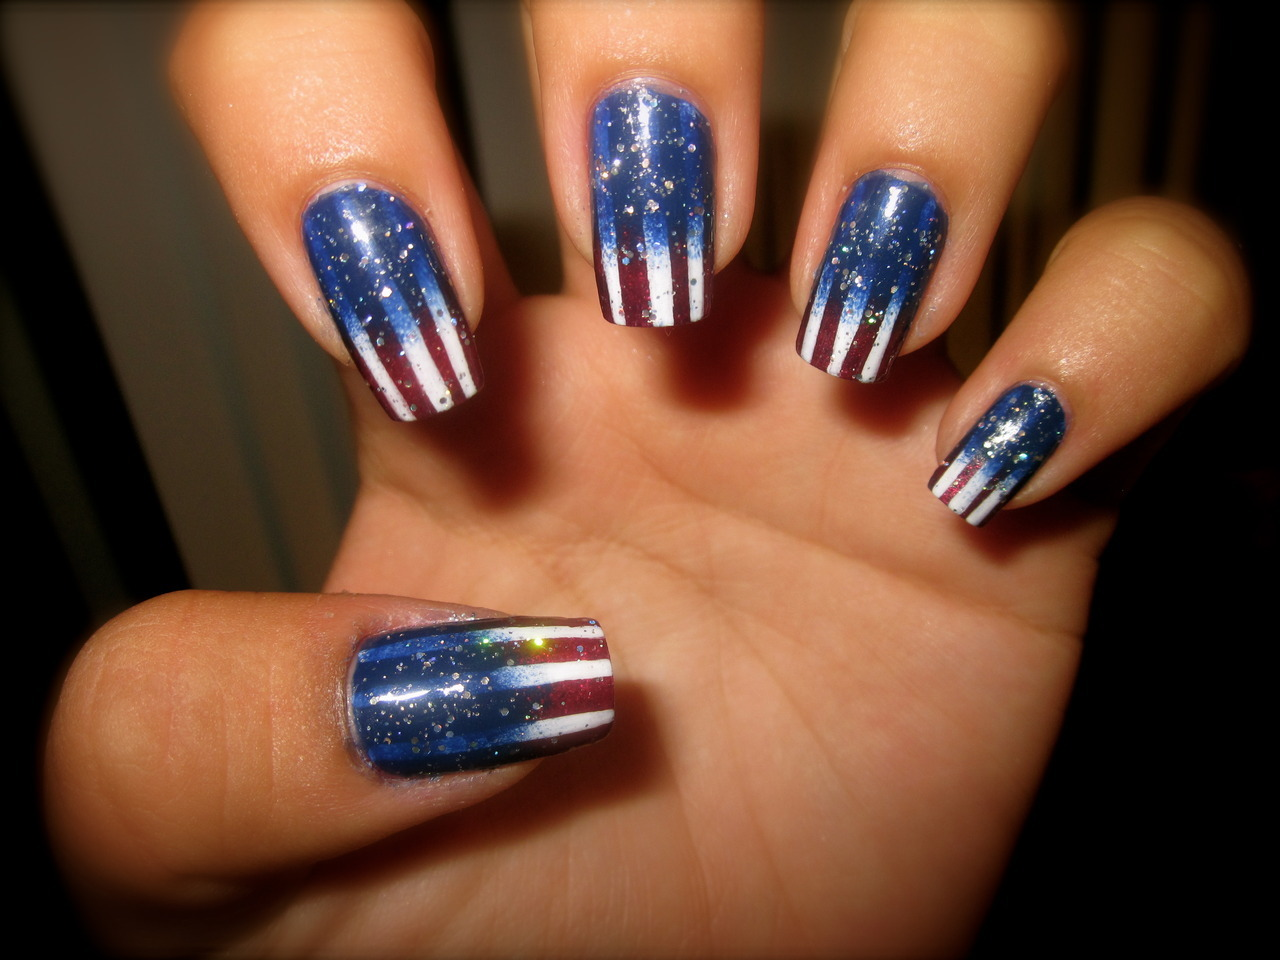 'MERICA MANICURE. Version 2.0.  Did another gradient because I just really love doing them. I used Julep's Glenn (red) and Sally Hansen's Complete Salon Manicure Thinking of Blue and just some white and some Wet 'n' Wild silver glitter. Happy (early) 4th of July, everyone! Dedicating this manicure to 6/D!